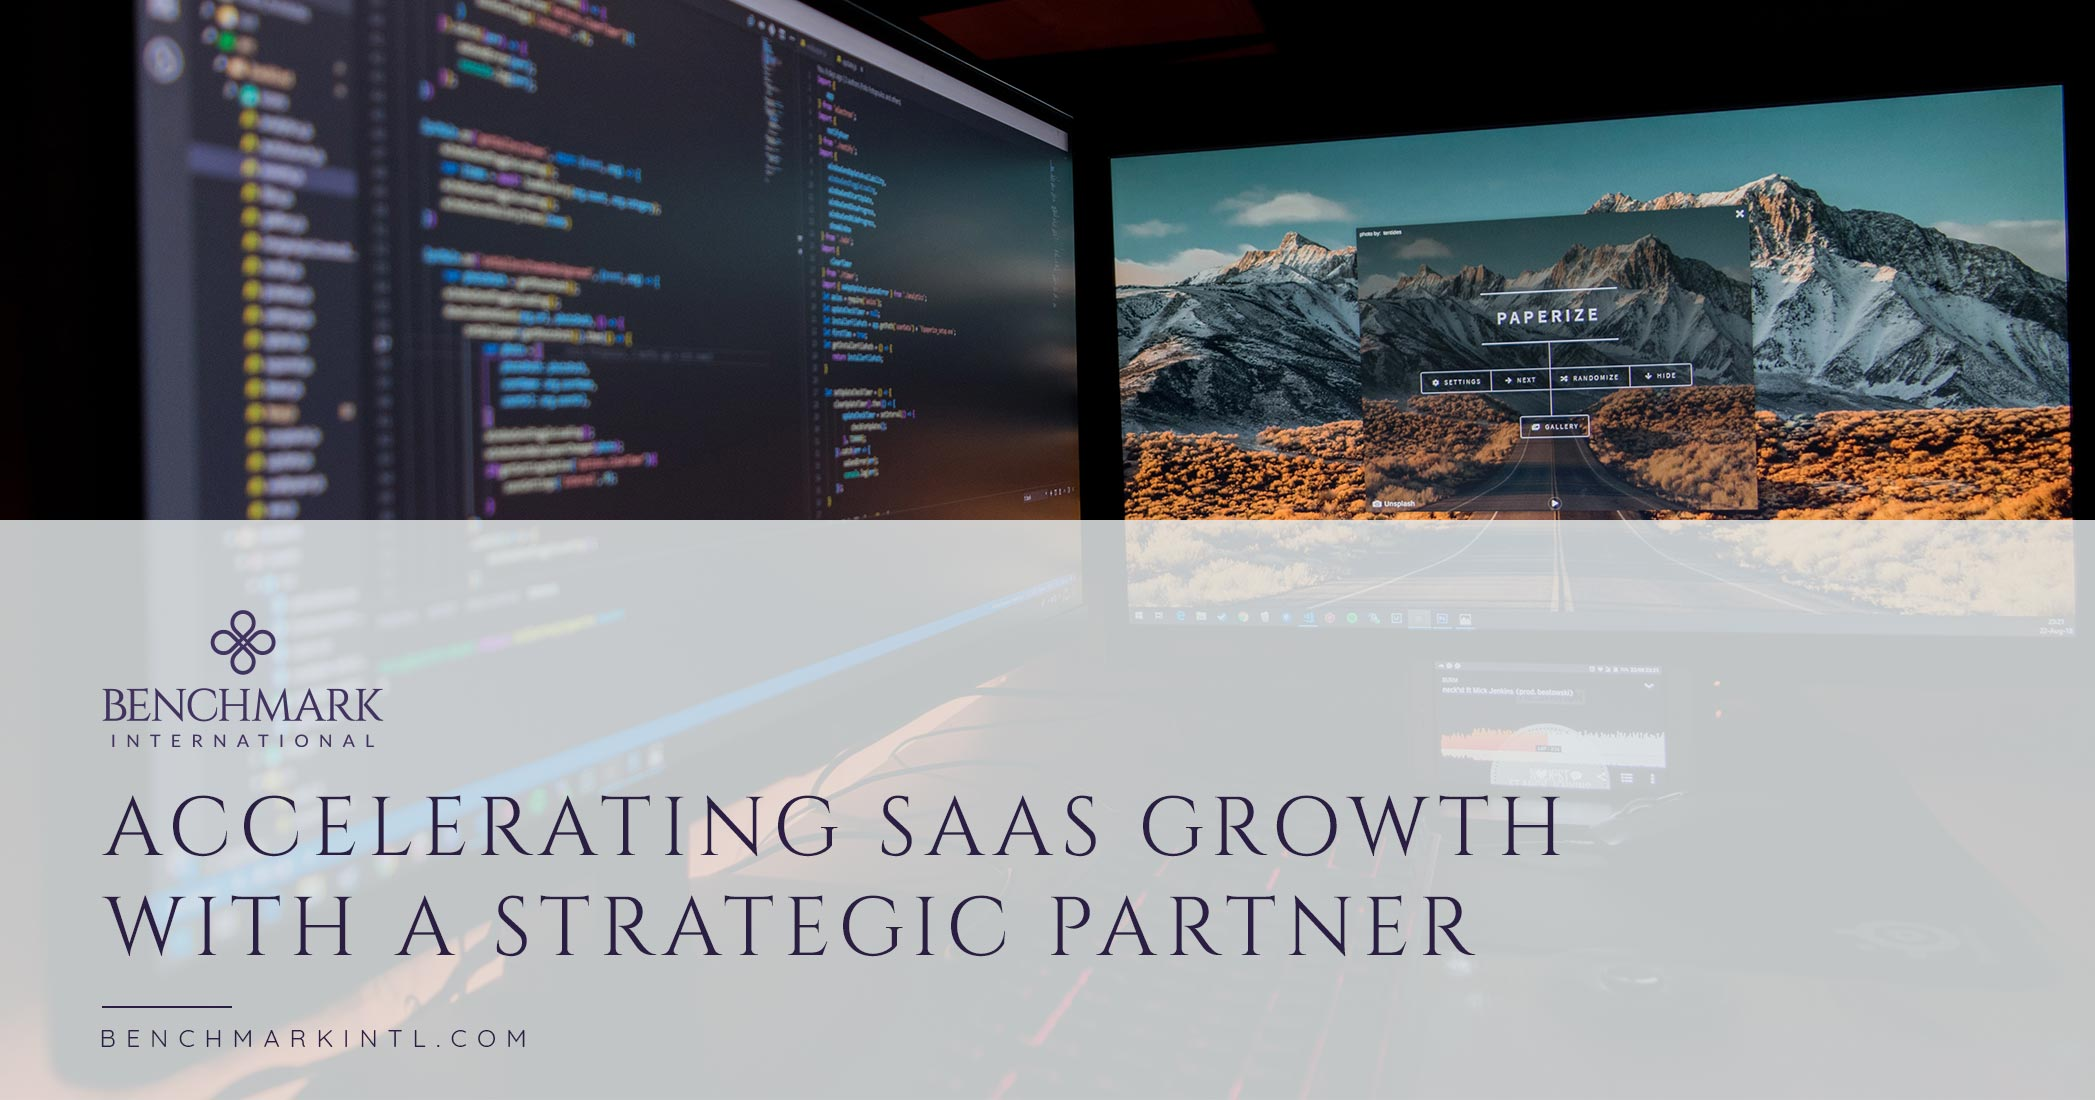 Accelerating SaaS Growth With A Strategic Partner